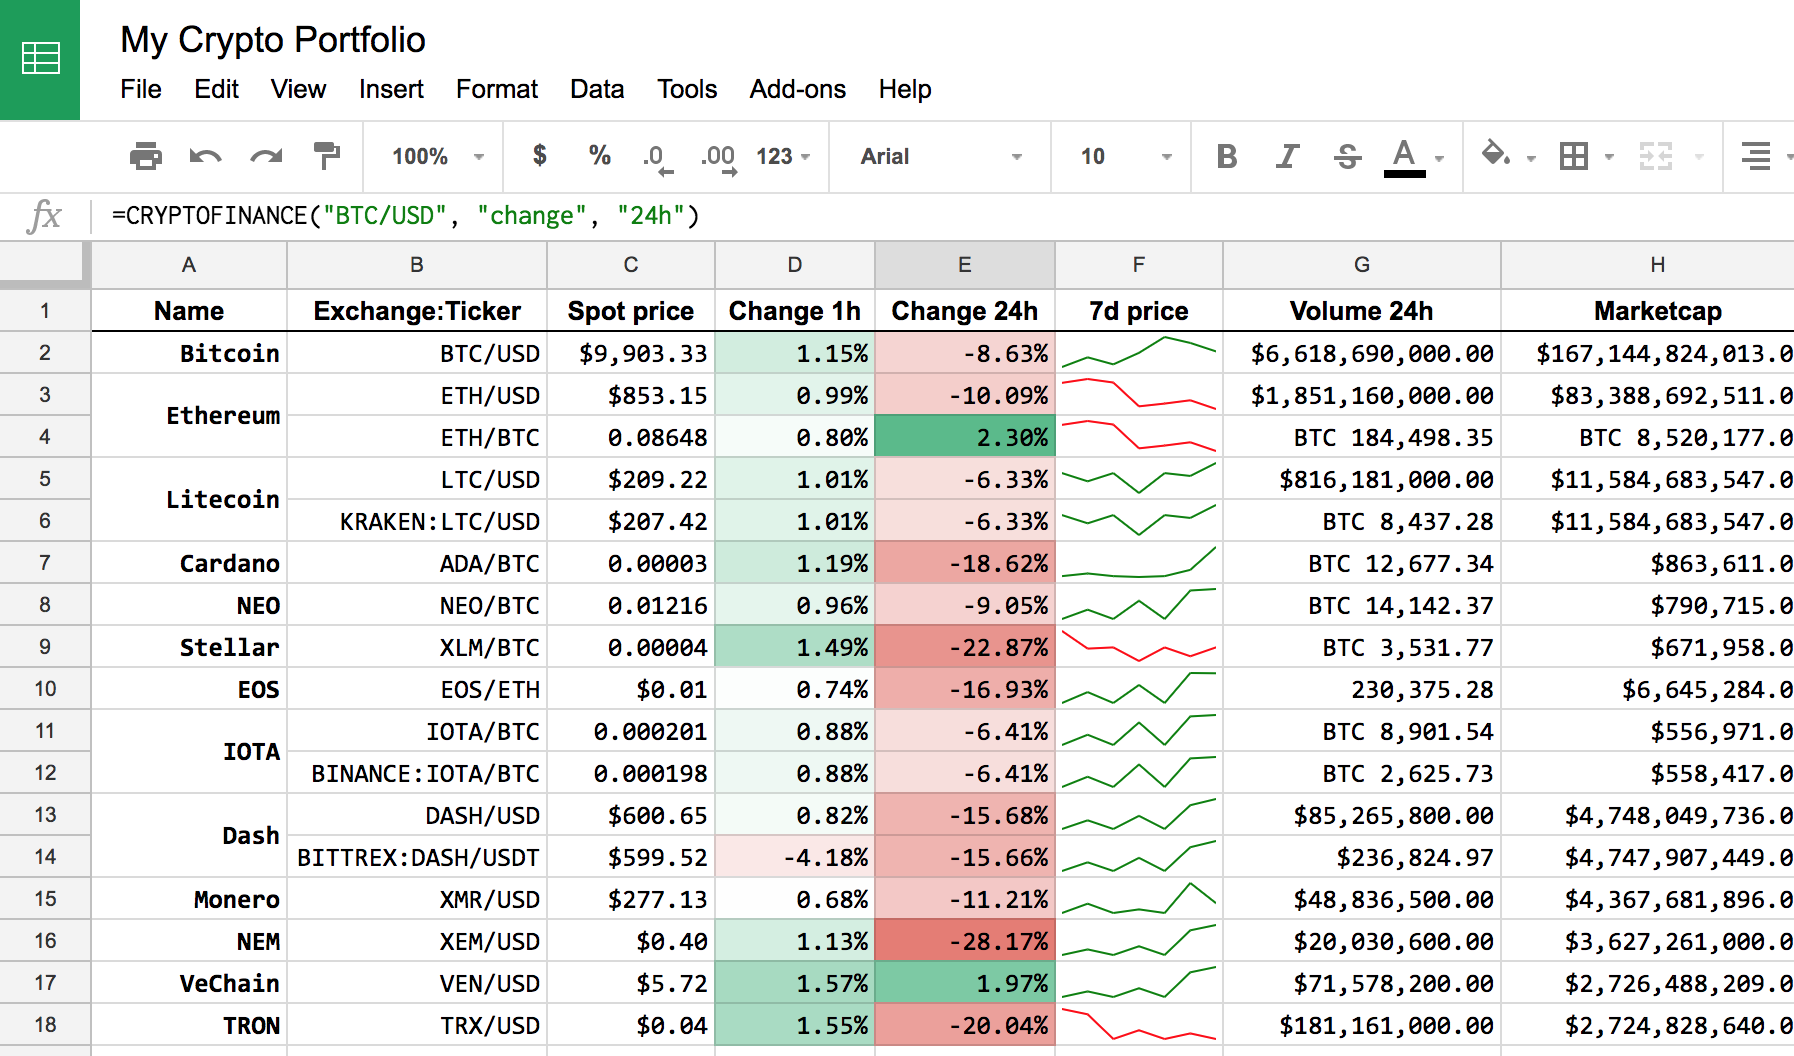 Getting Started with CRYPTOFINANCE in Google Sheets